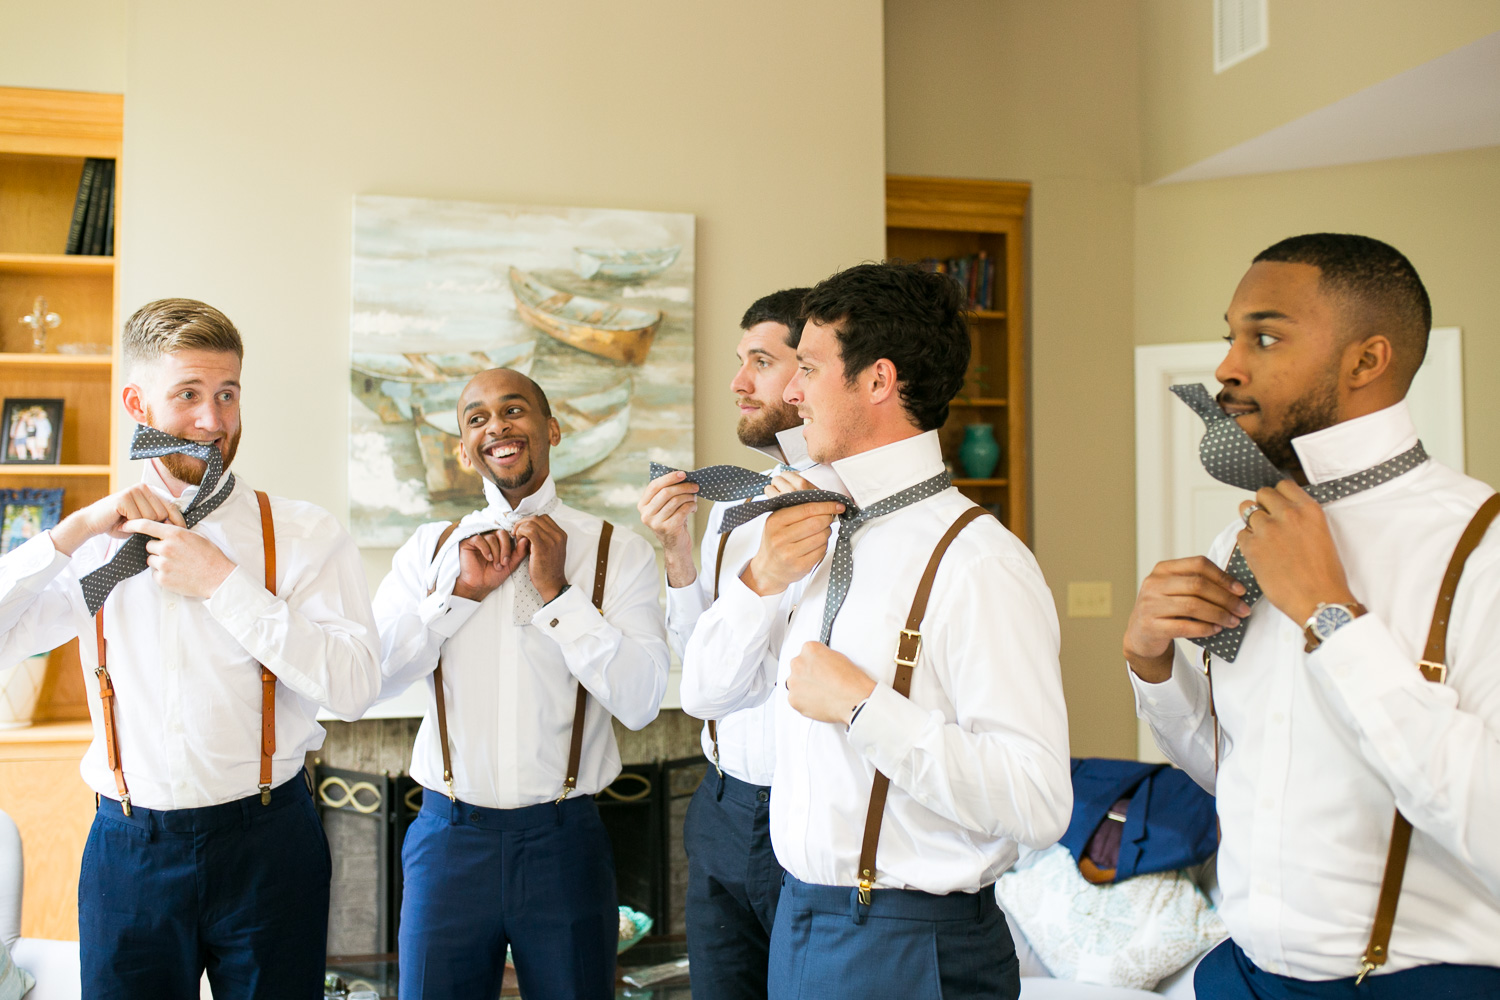 Groomsmen getting ready for wedding day